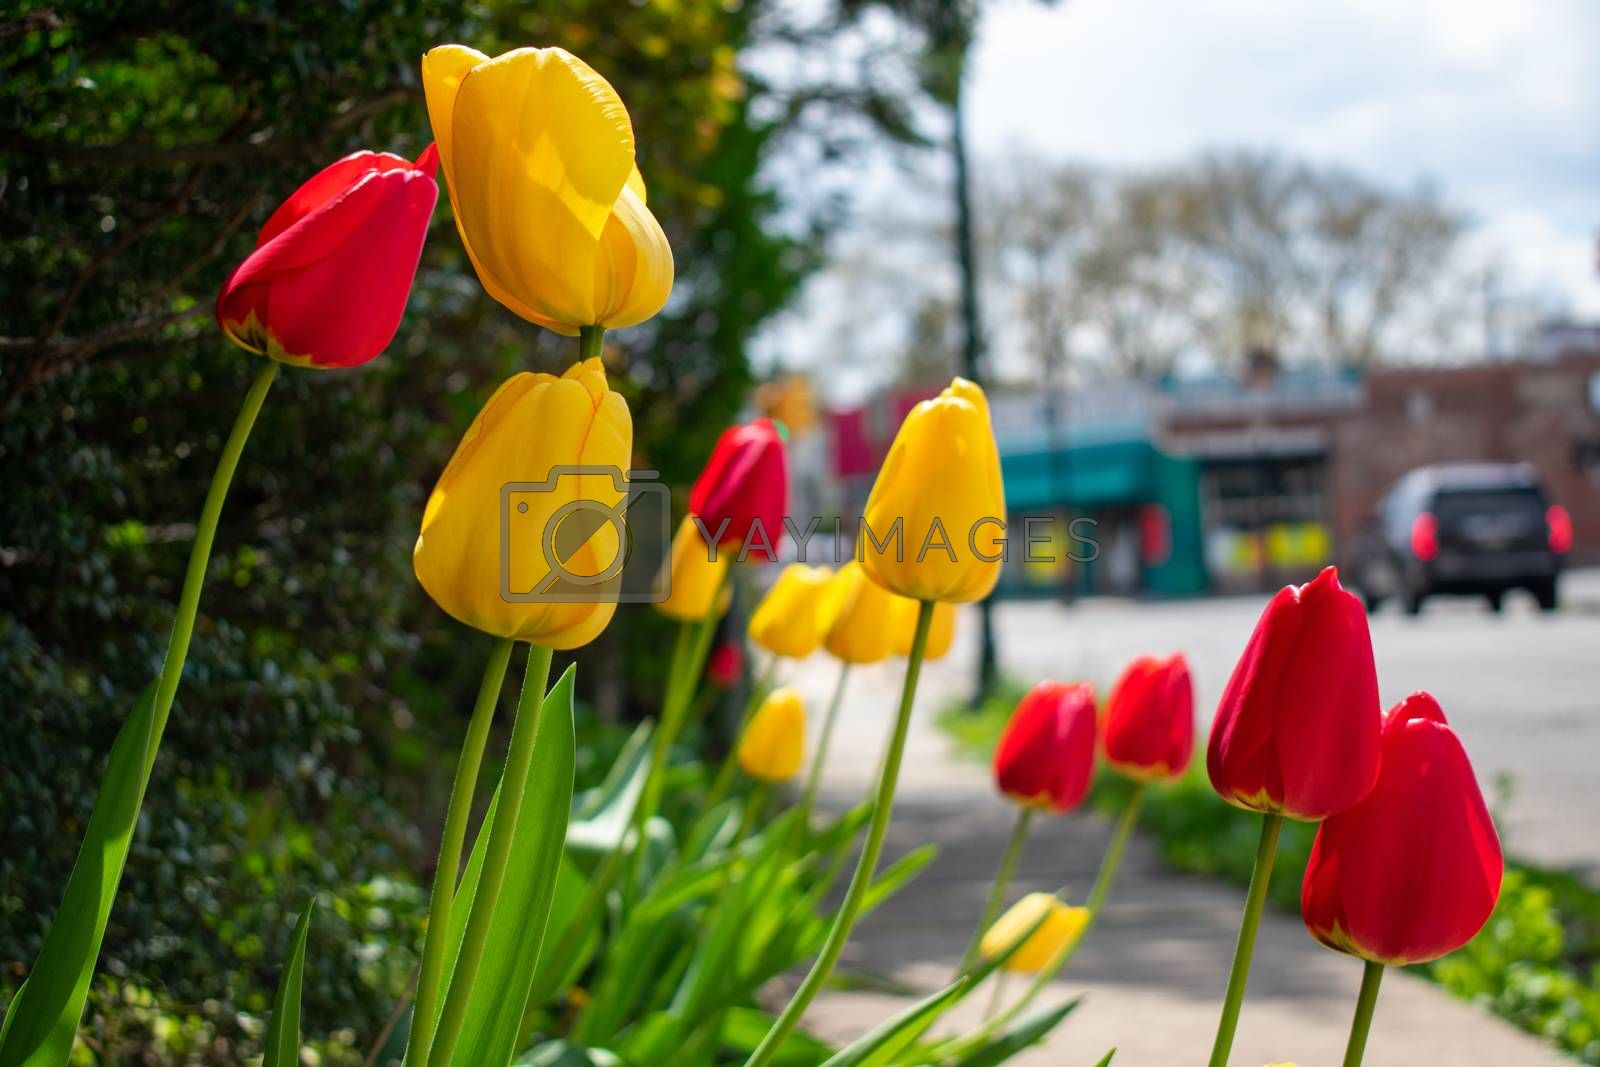 A Patch of Fresh Yellow and Red Tulips Next to a Suburban Sidewalk